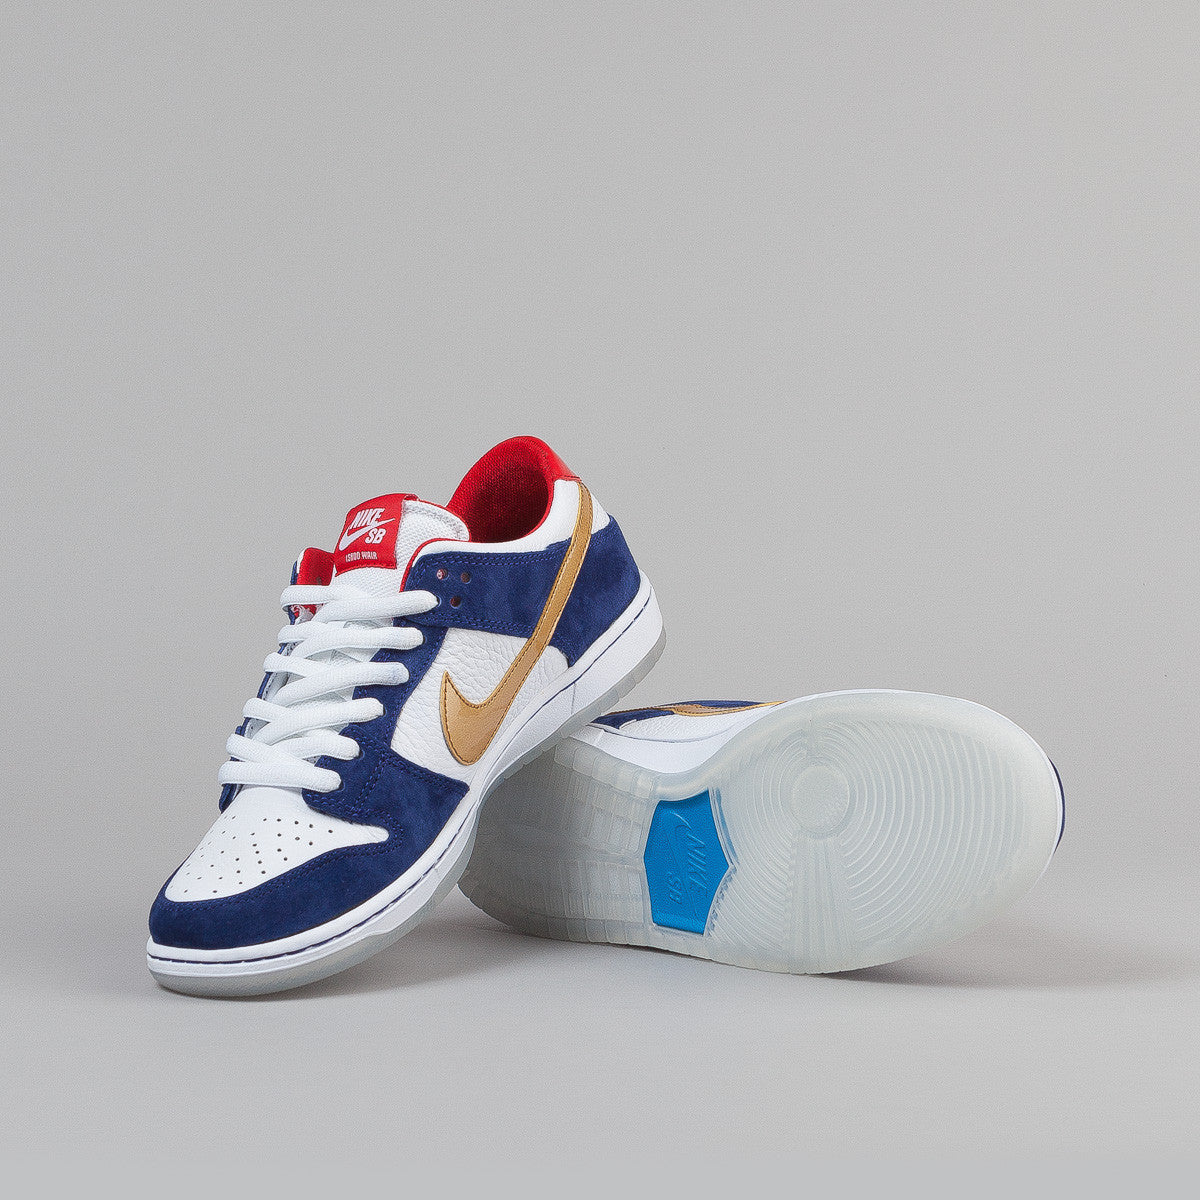 Nike SB Dunk Low Pro Ishod Wair QS Shoes - Deep Royal Blue / Metallic Silver - University Red